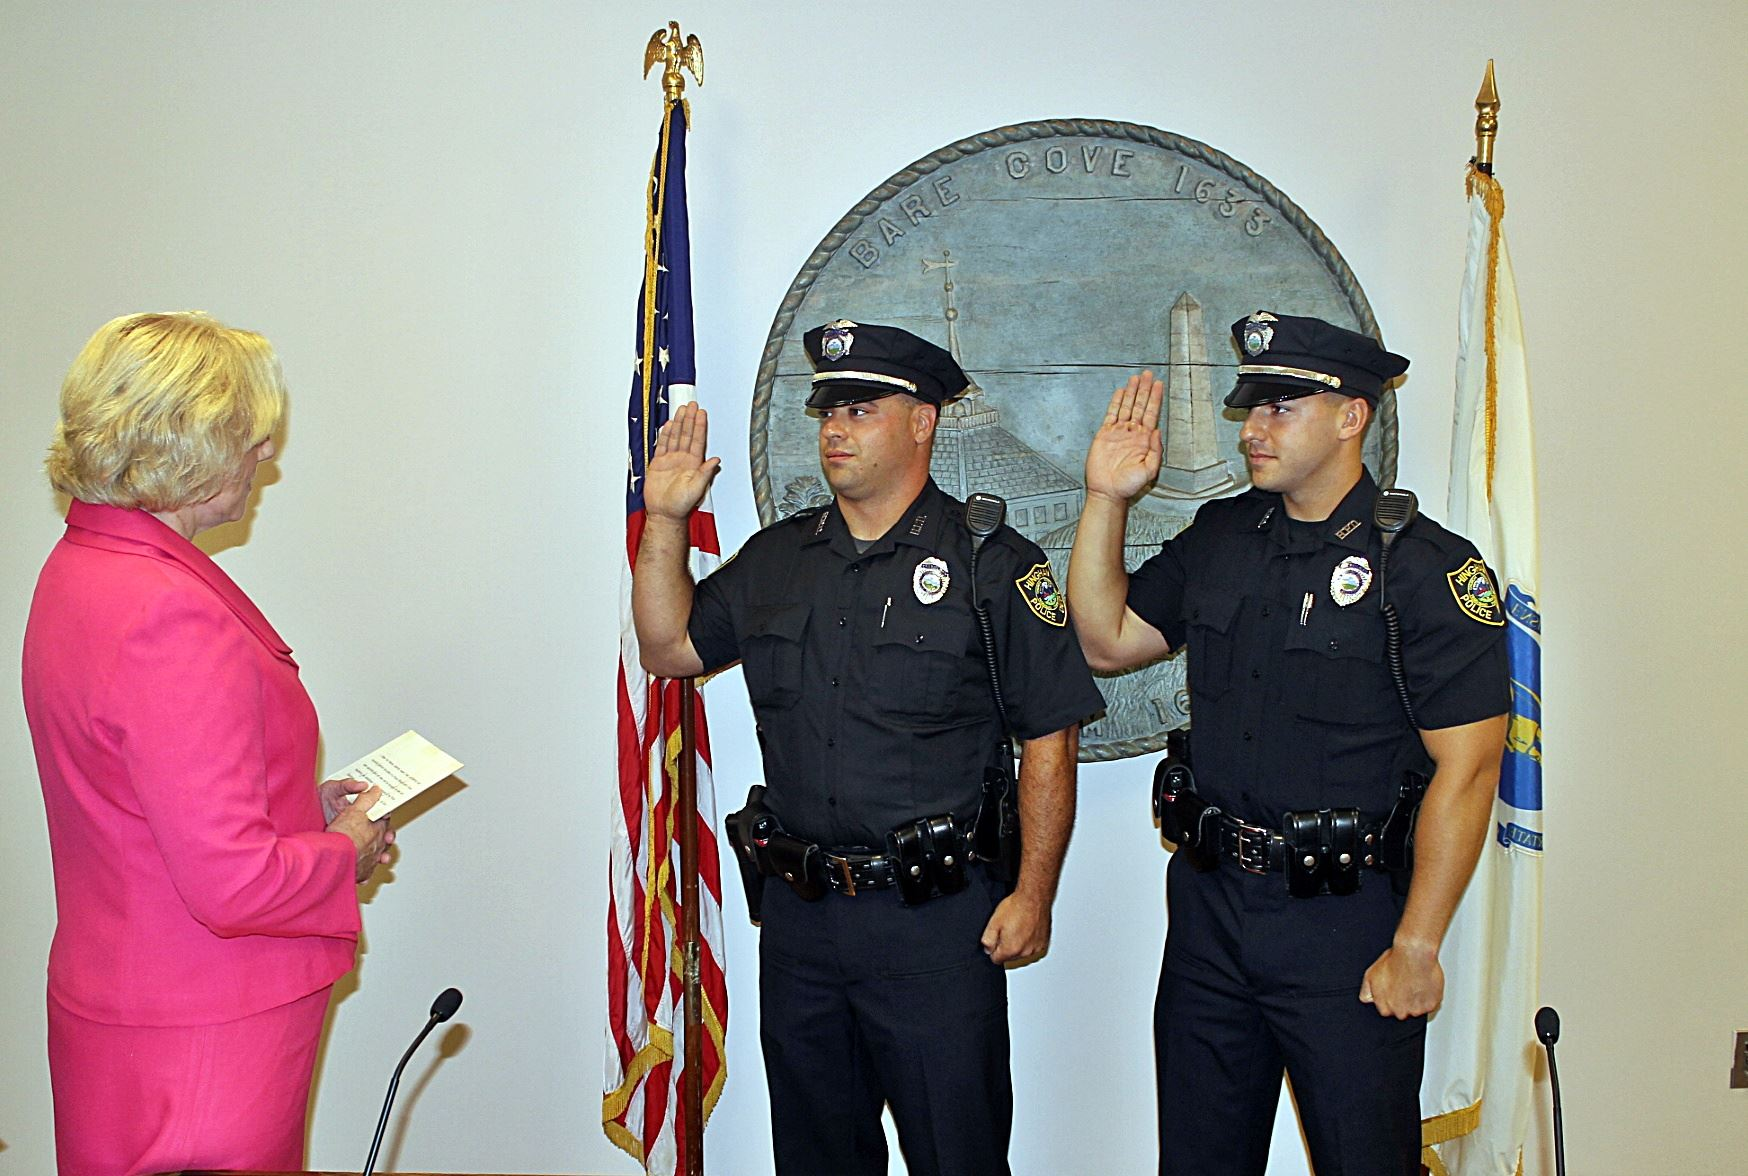 Officers Dunlea and Brady Swearing In